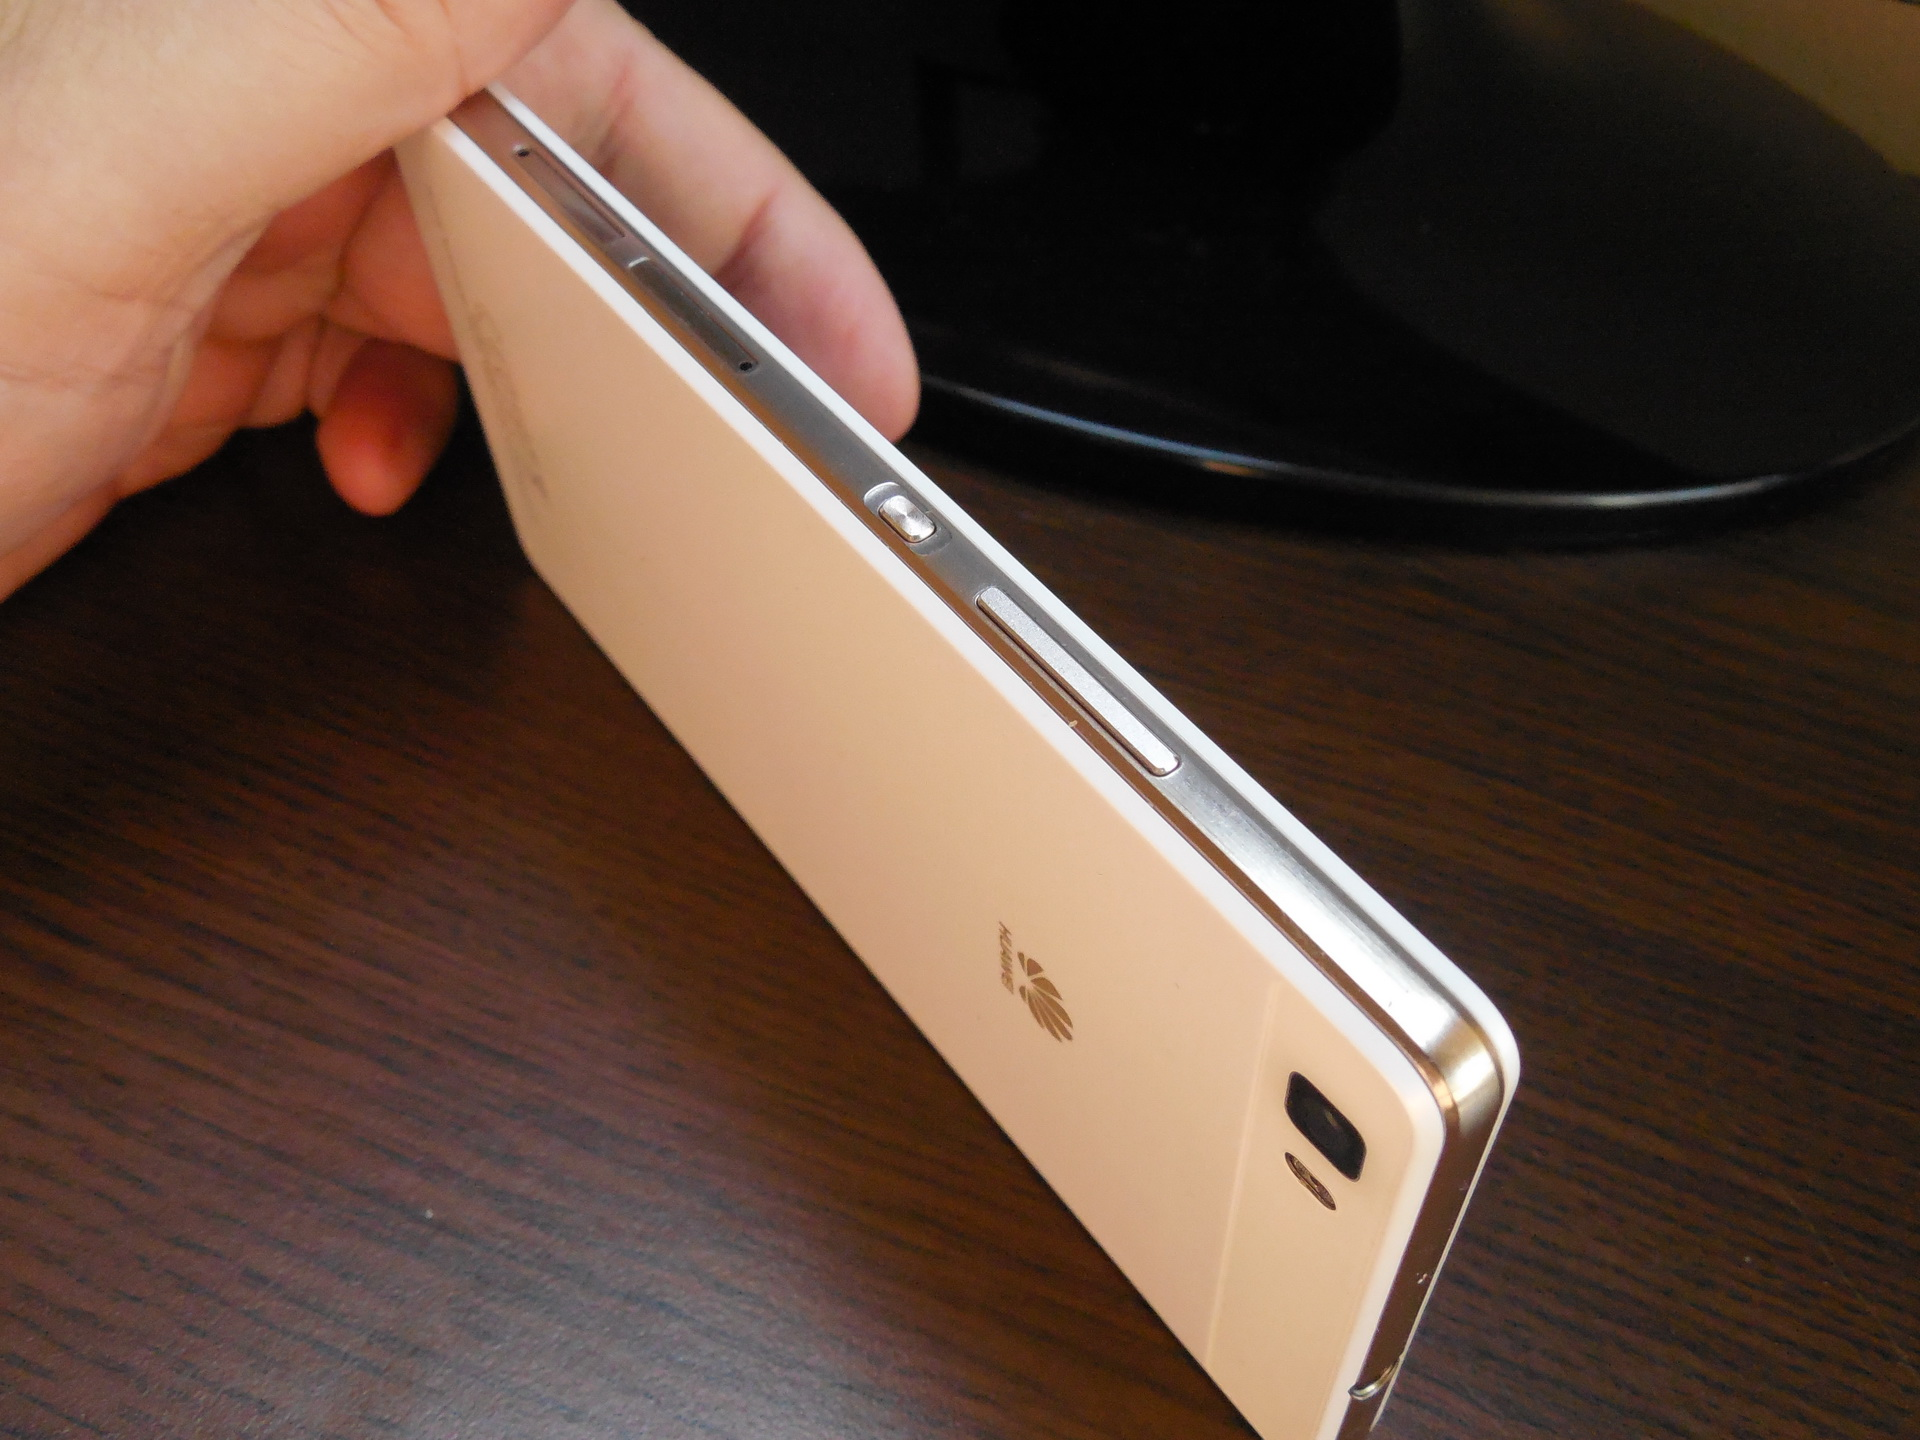 Huawei P8 Lite Review: Light and Affordable, Once Again an ...